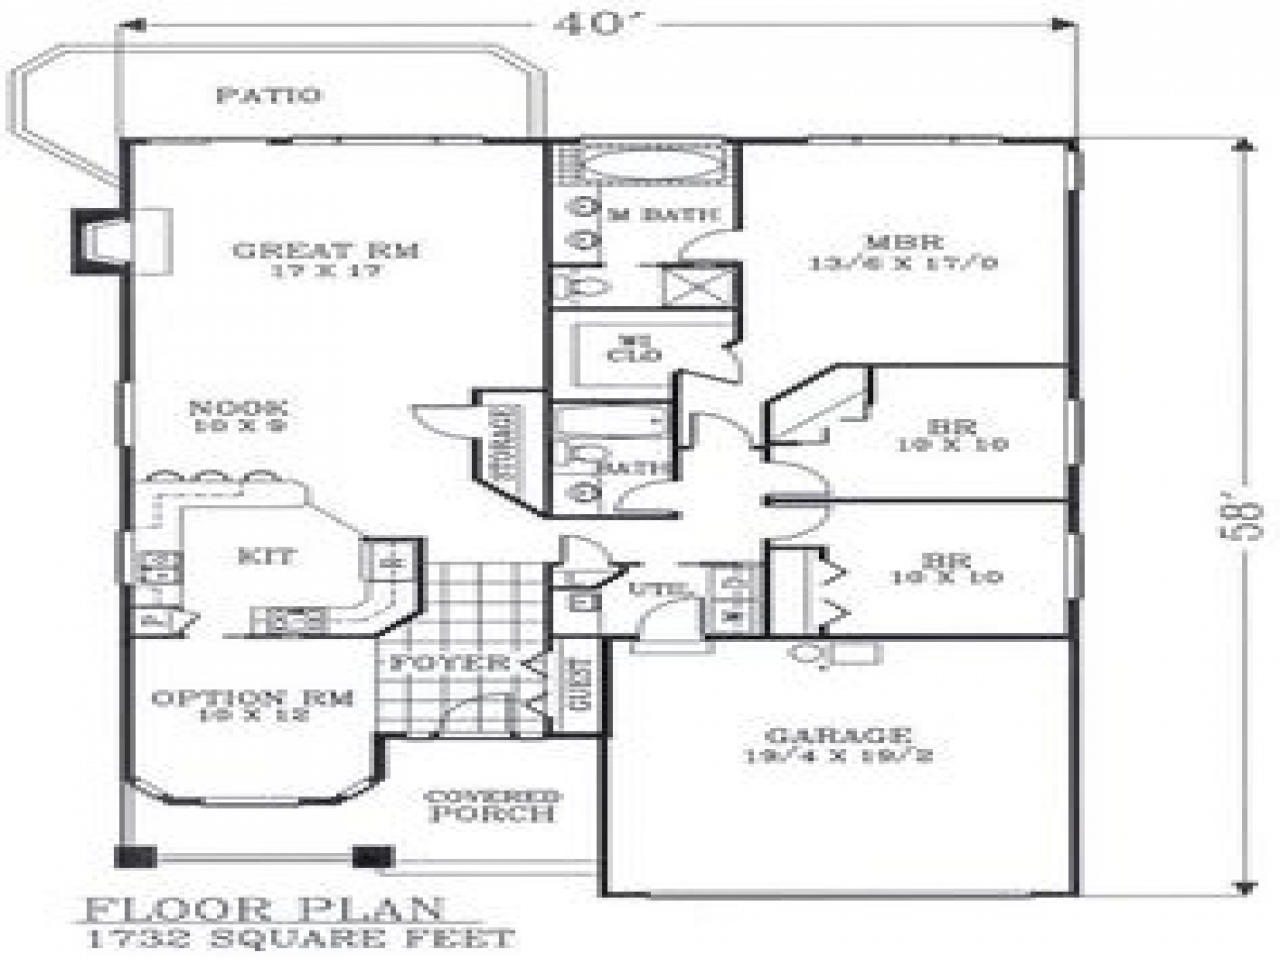 Craftsman open floor plans craftsman bungalow floor plans for Craftsman cottage floor plans